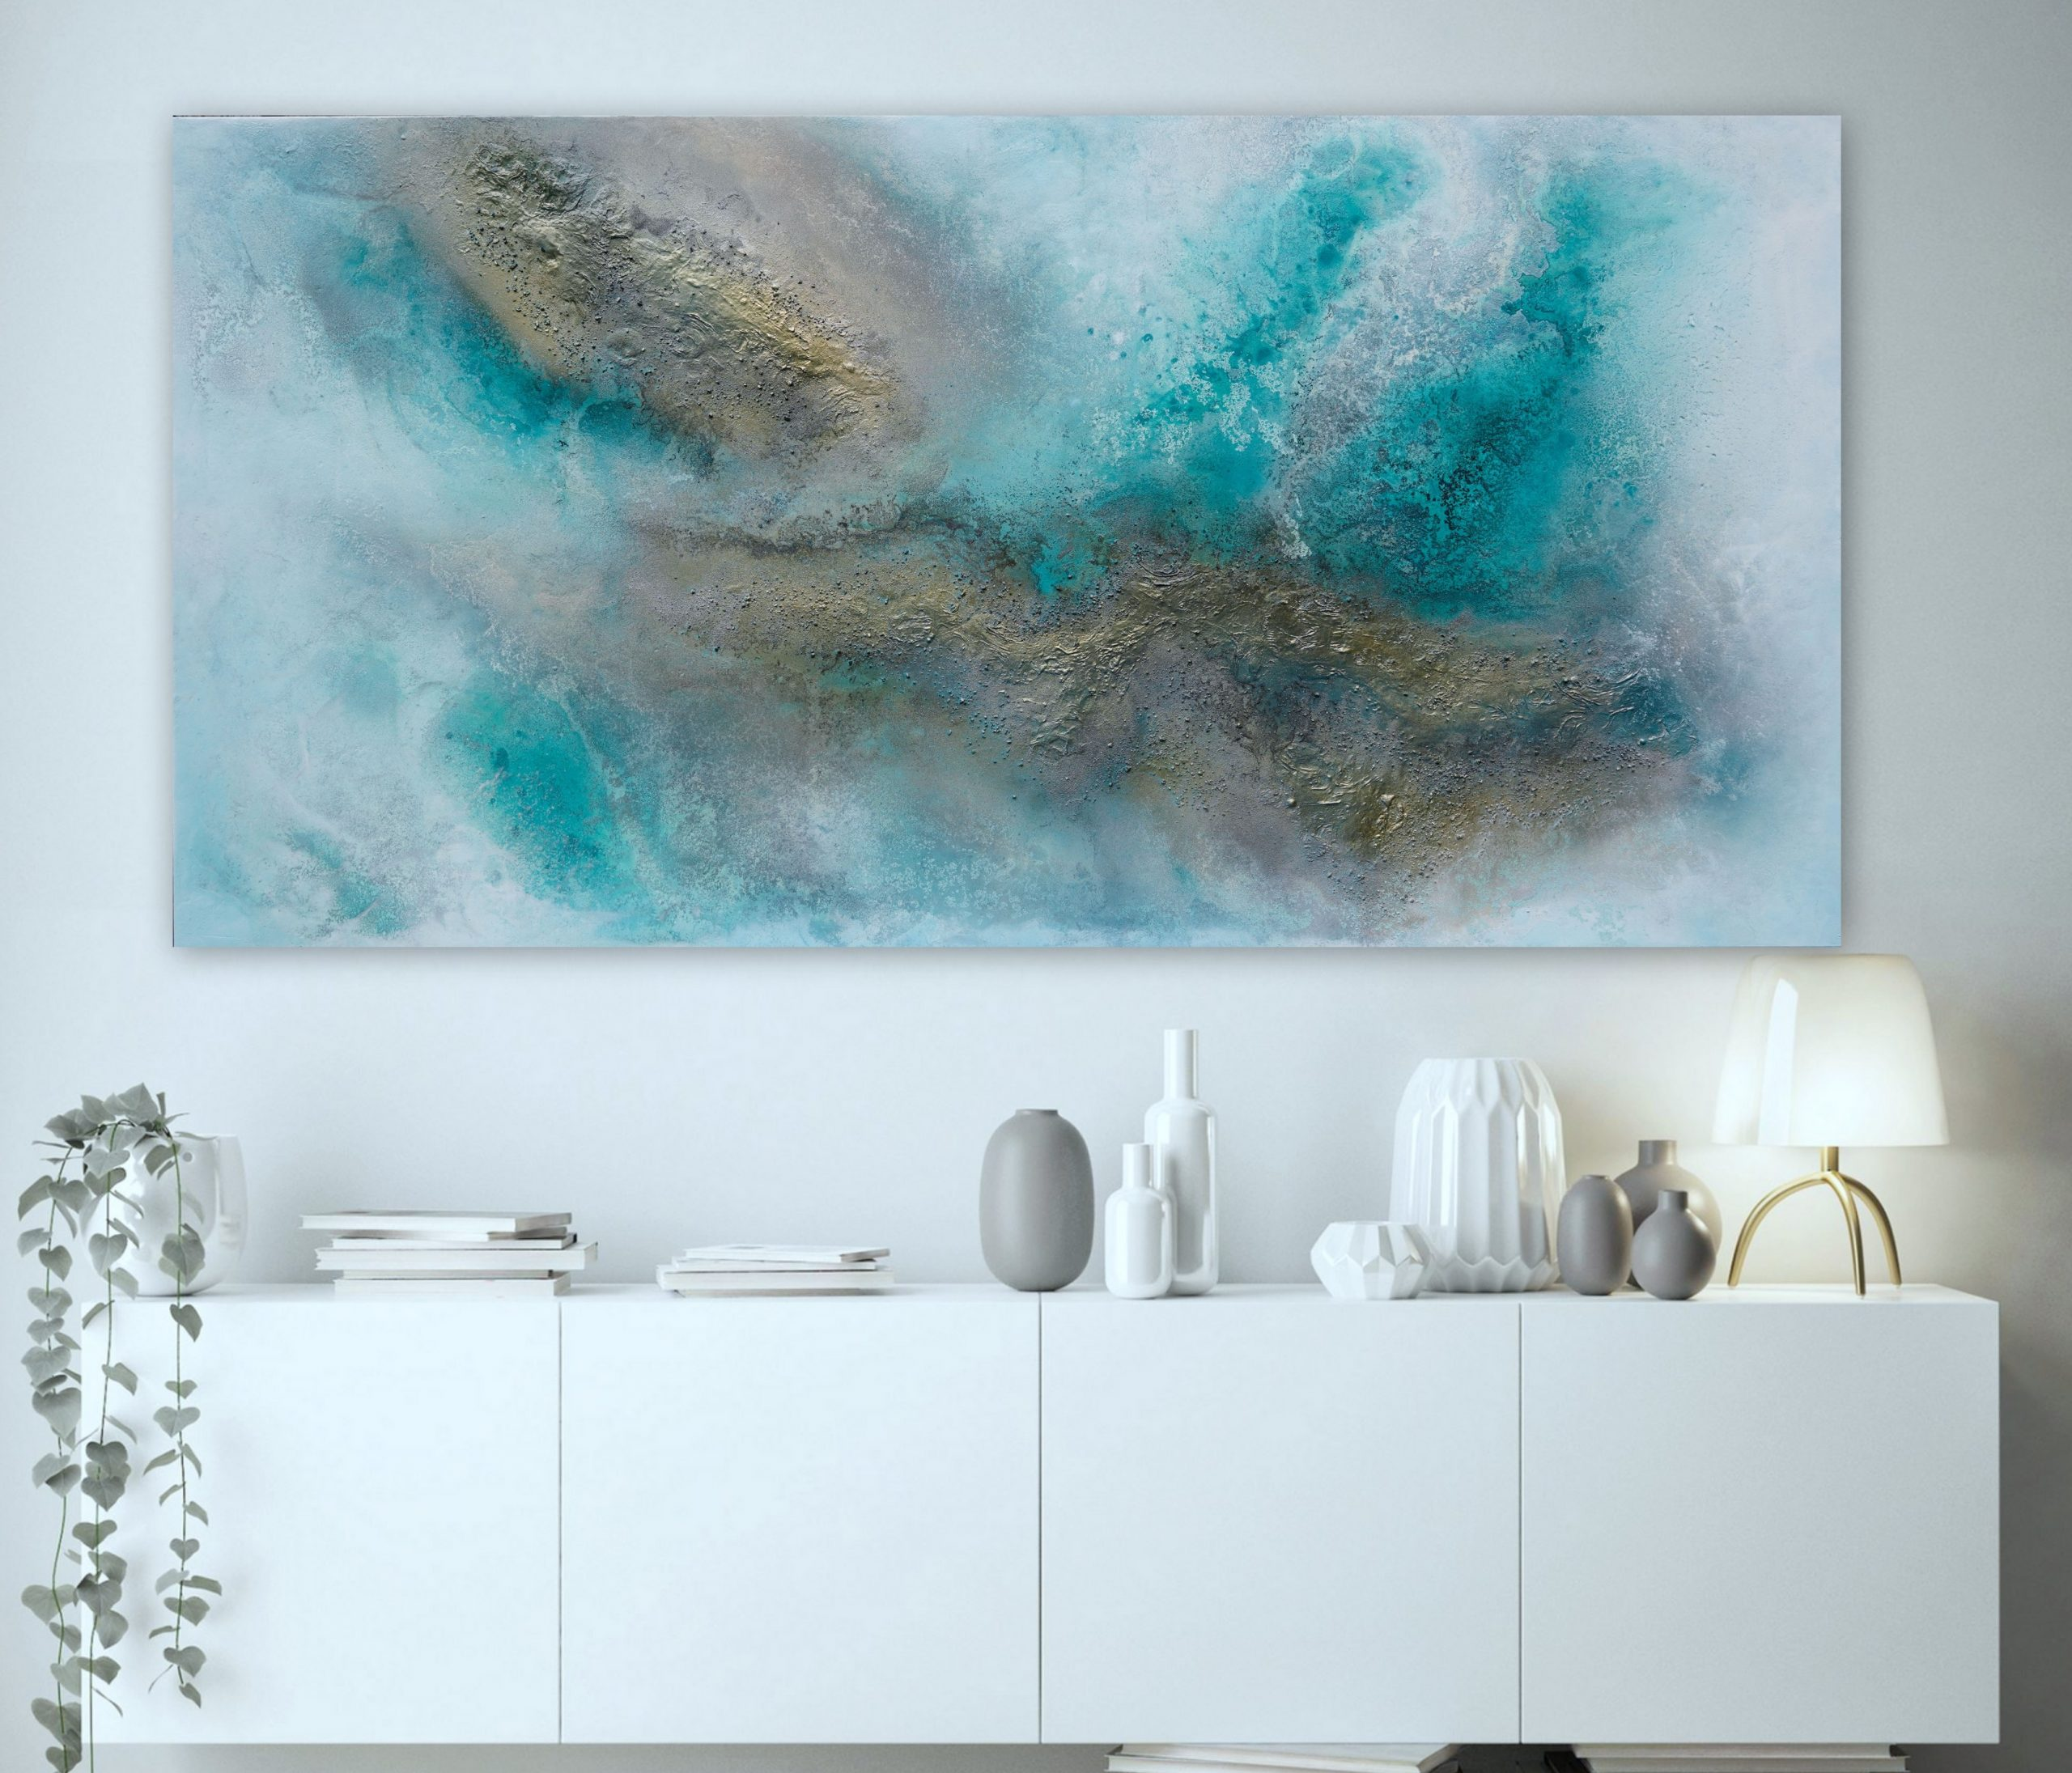 Abstract Wall Art For Sale By Petra Meikle De Vlas2